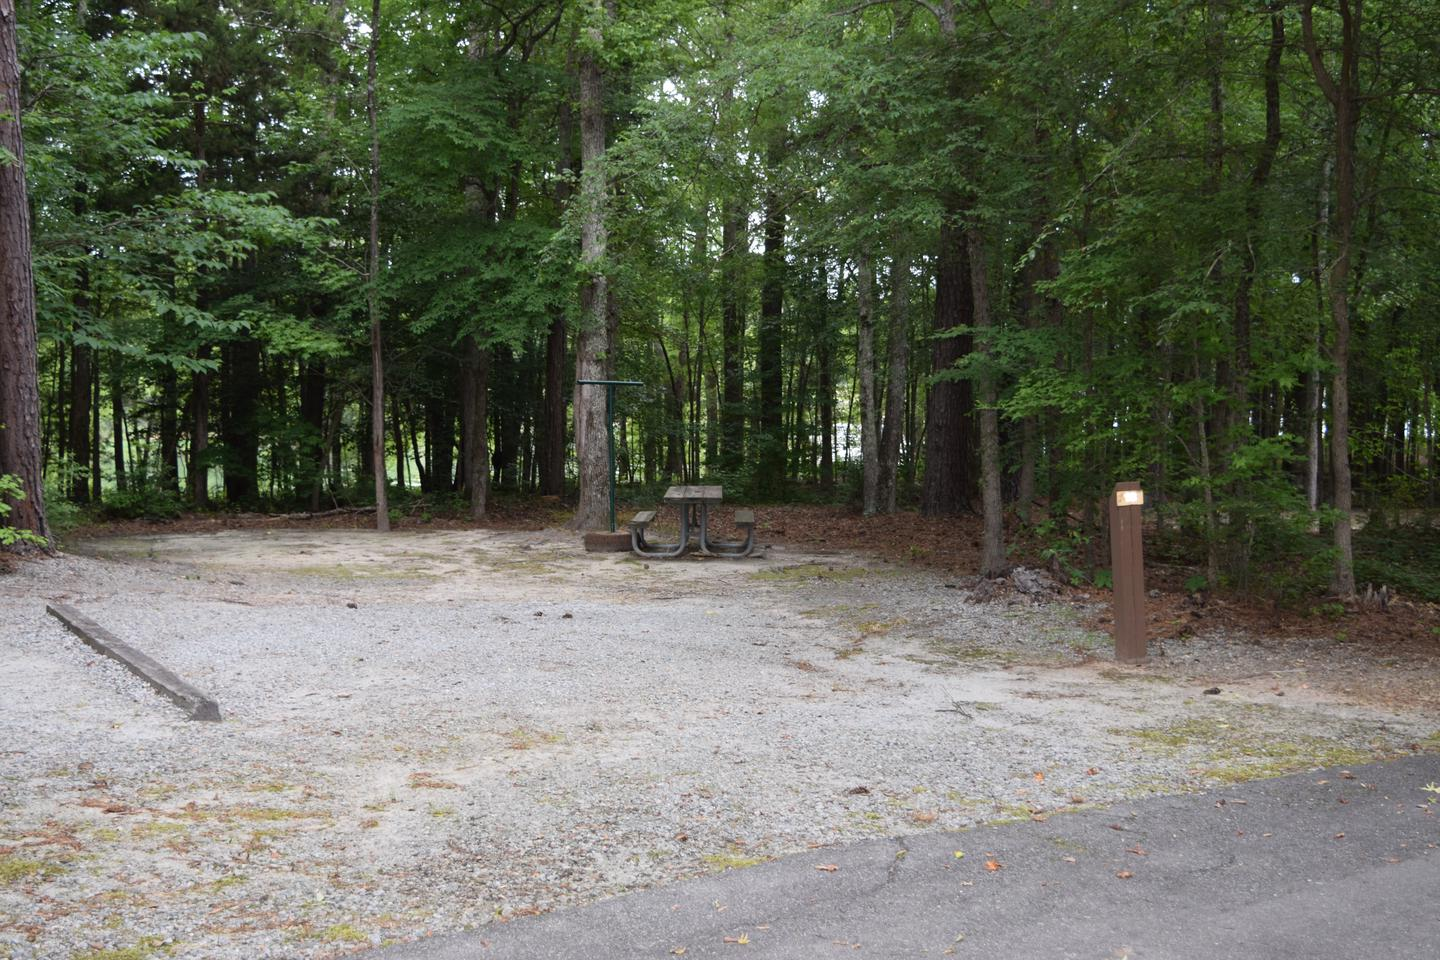 Piney Woods Campsite 17Welcome to Piney Woods Group Camping Area! This is a picture of one of the campsites within Piney Woods Group Camping Area. These campsites are designed for tent campers. Some of these campsites have campsite posts with them while others do not. Not all campsites are gravel; some of them are more dirt.